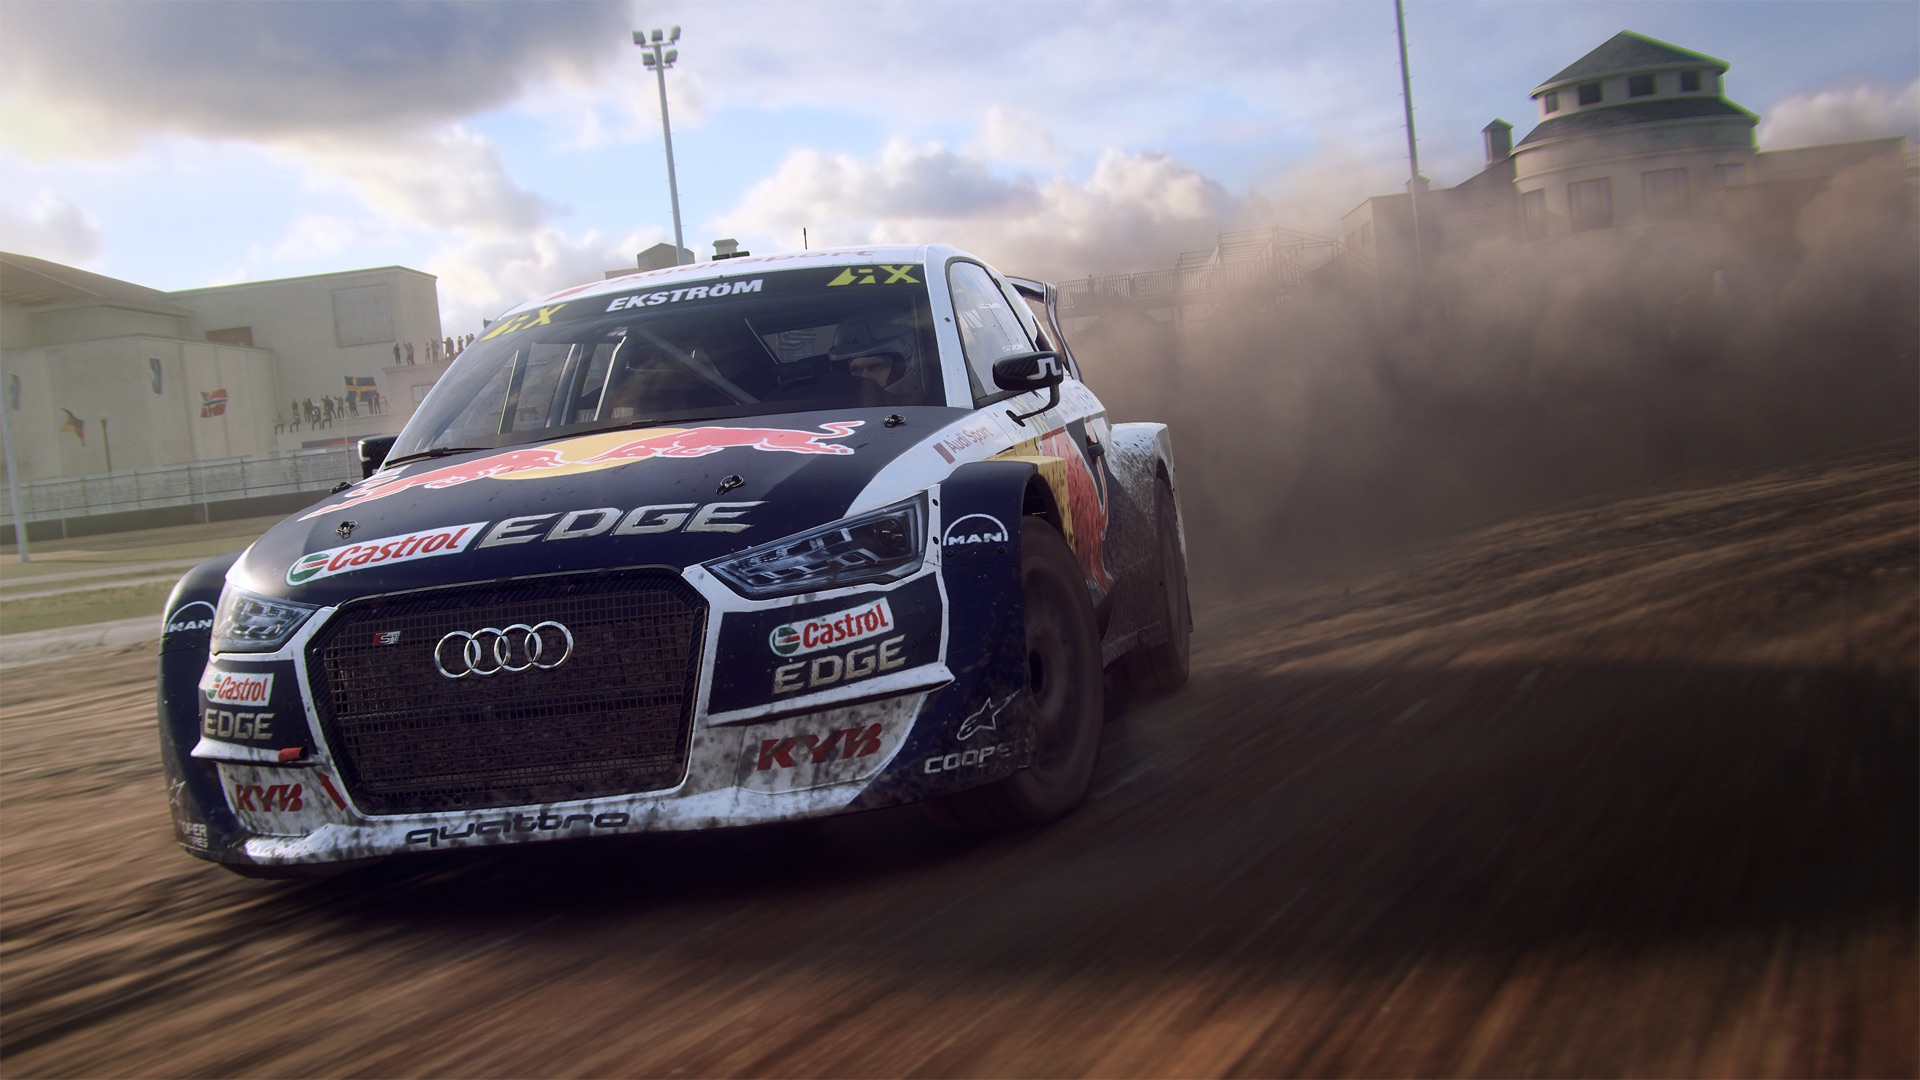 DiRT_Rally_2.0_Audi_RX_1